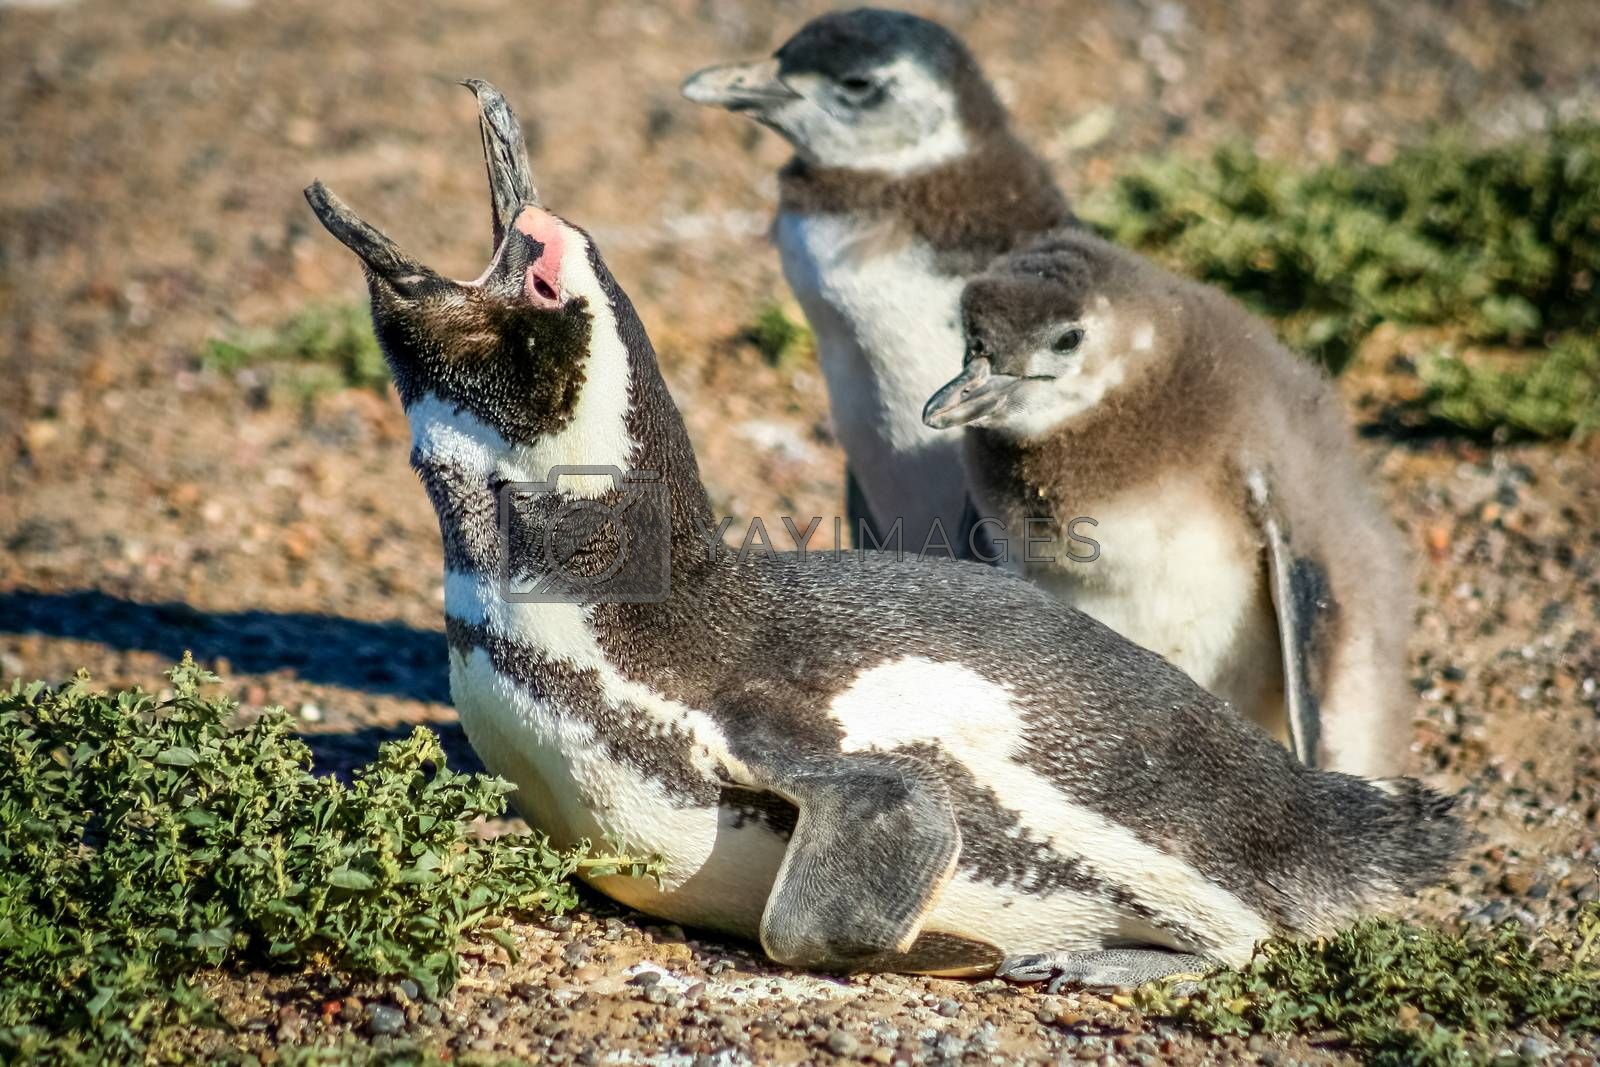 Magellanic penguins at Punta Tombo in Patagonia, Argentina